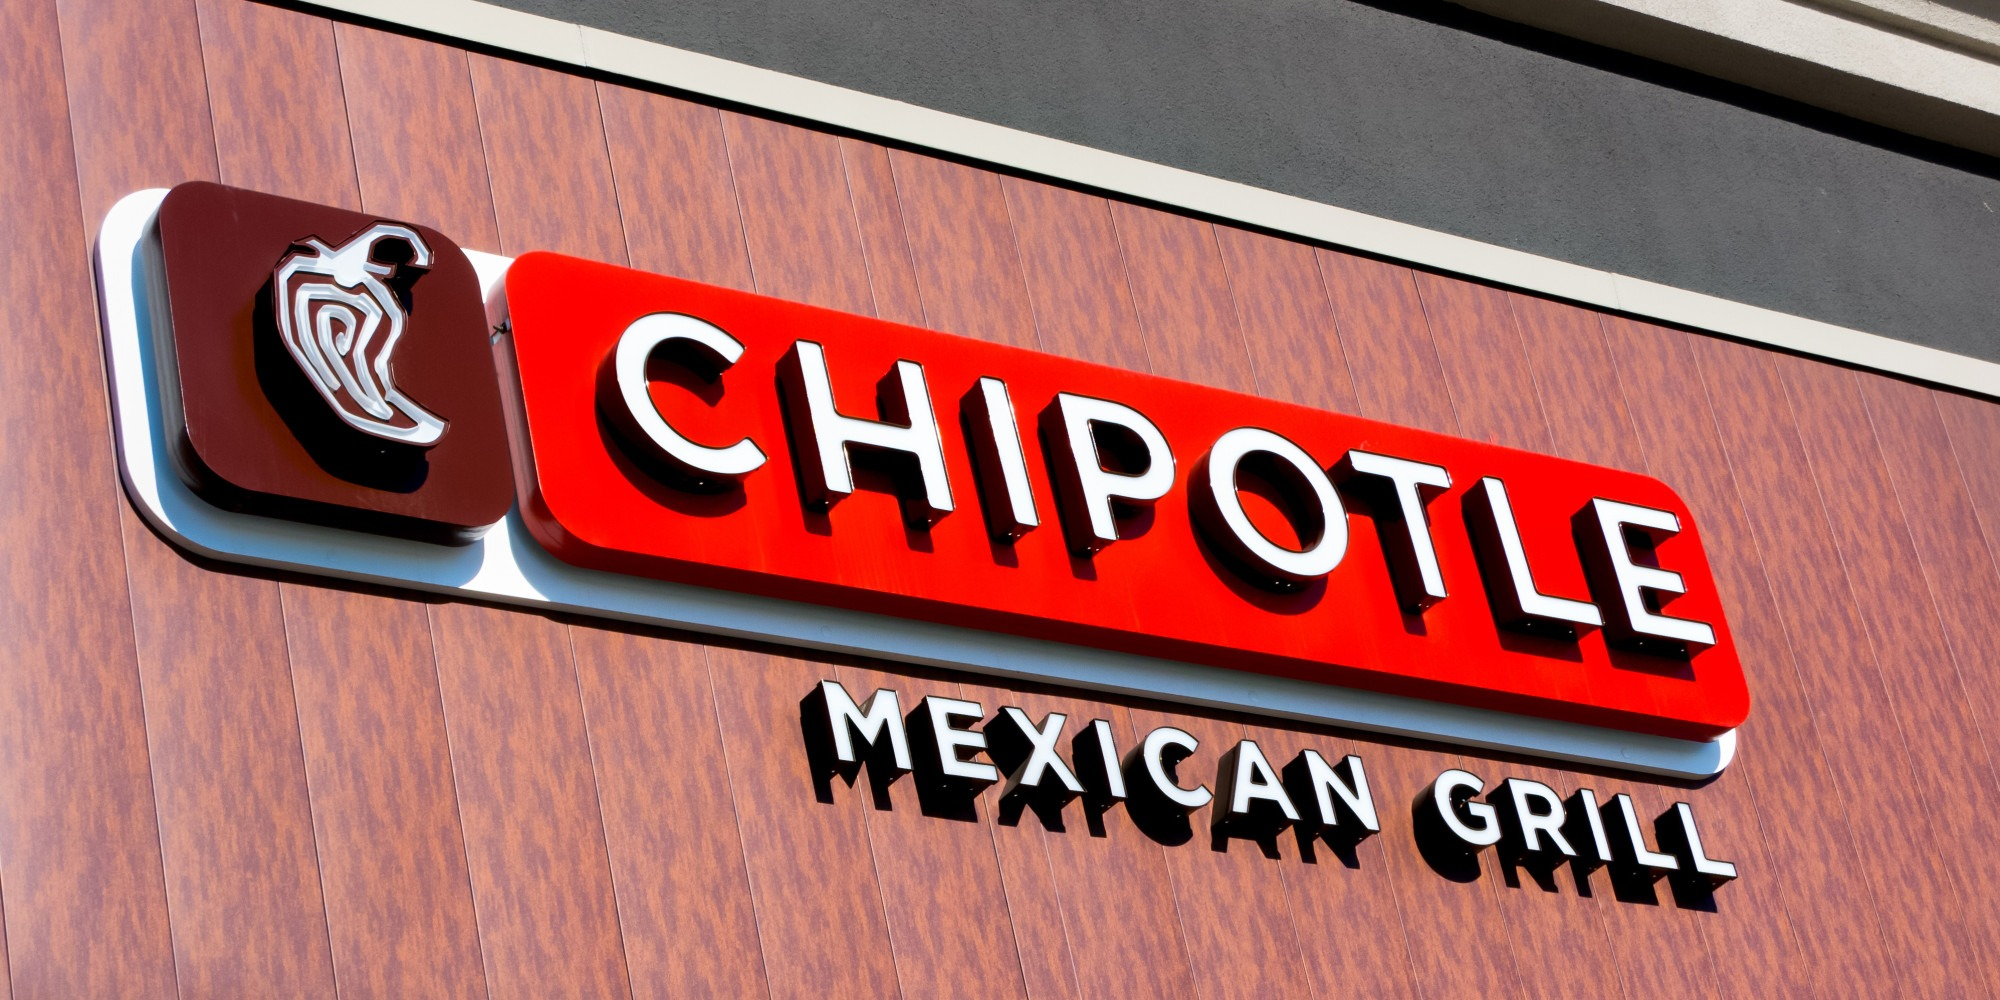 OpTic Gaming Reveal New Sponsor Chipotle   The Esports Observer 2000x1000